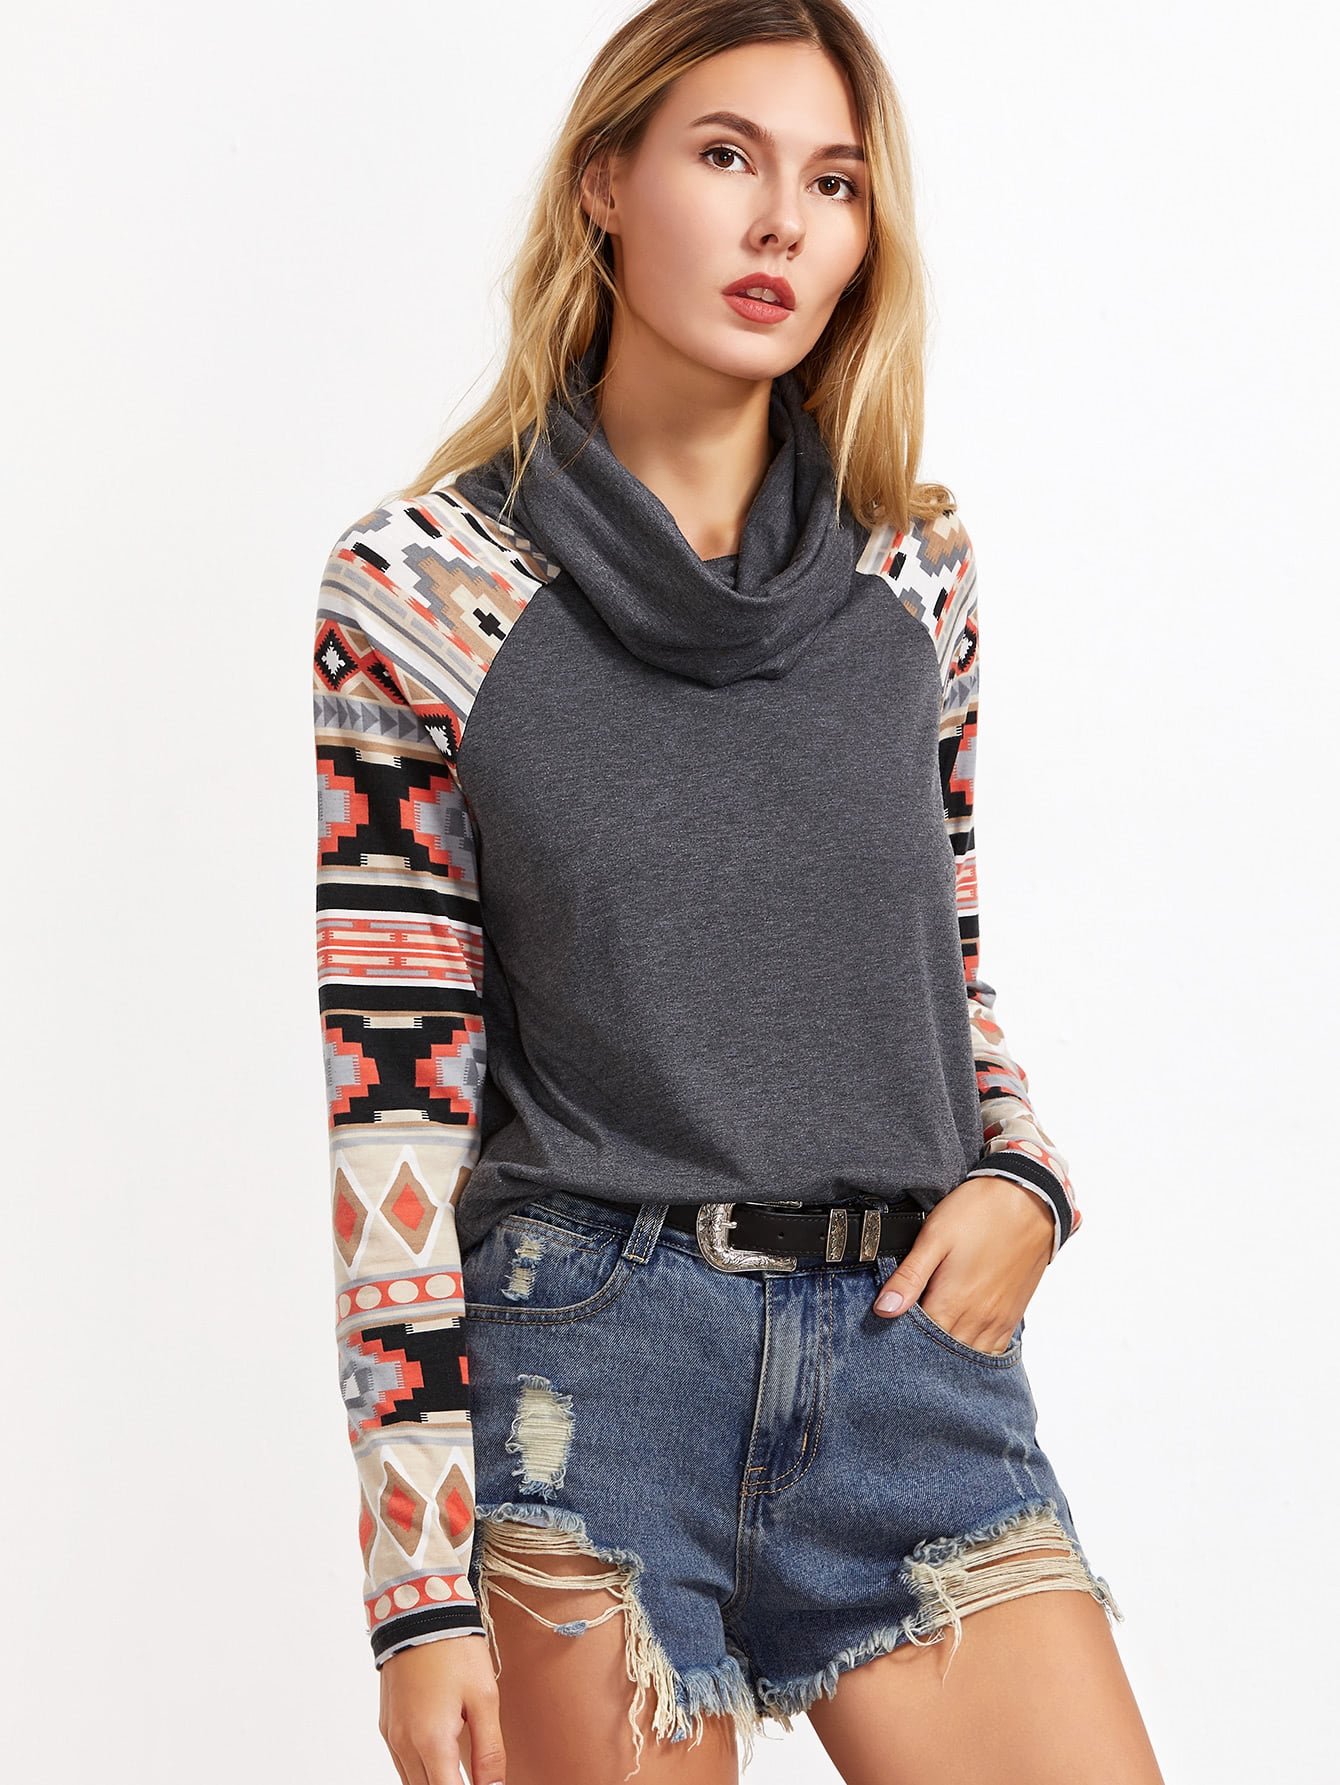 Heather Grey Cowl Neck Tribal Print Raglan Sleeve T-shirtHeather Grey Cowl Neck Tribal Print Raglan Sleeve T-shirt<br><br>color: Grey<br>size: L,M,S,XS